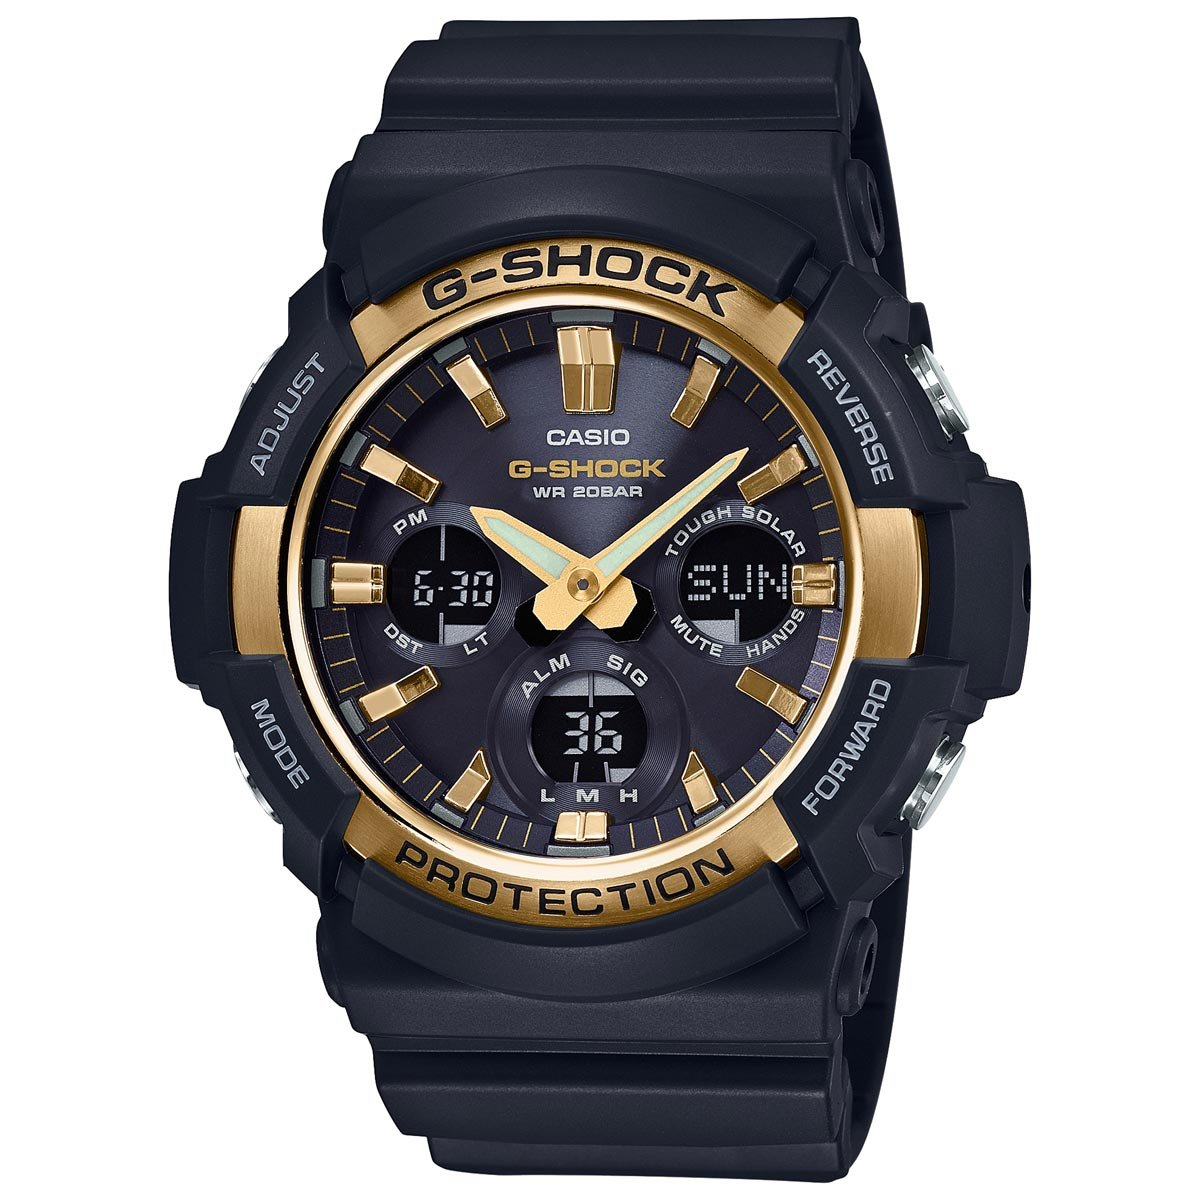 Casio G-Shock GAS100G-1A Tough Solar Resin Stainless Steel Men s Watch Black